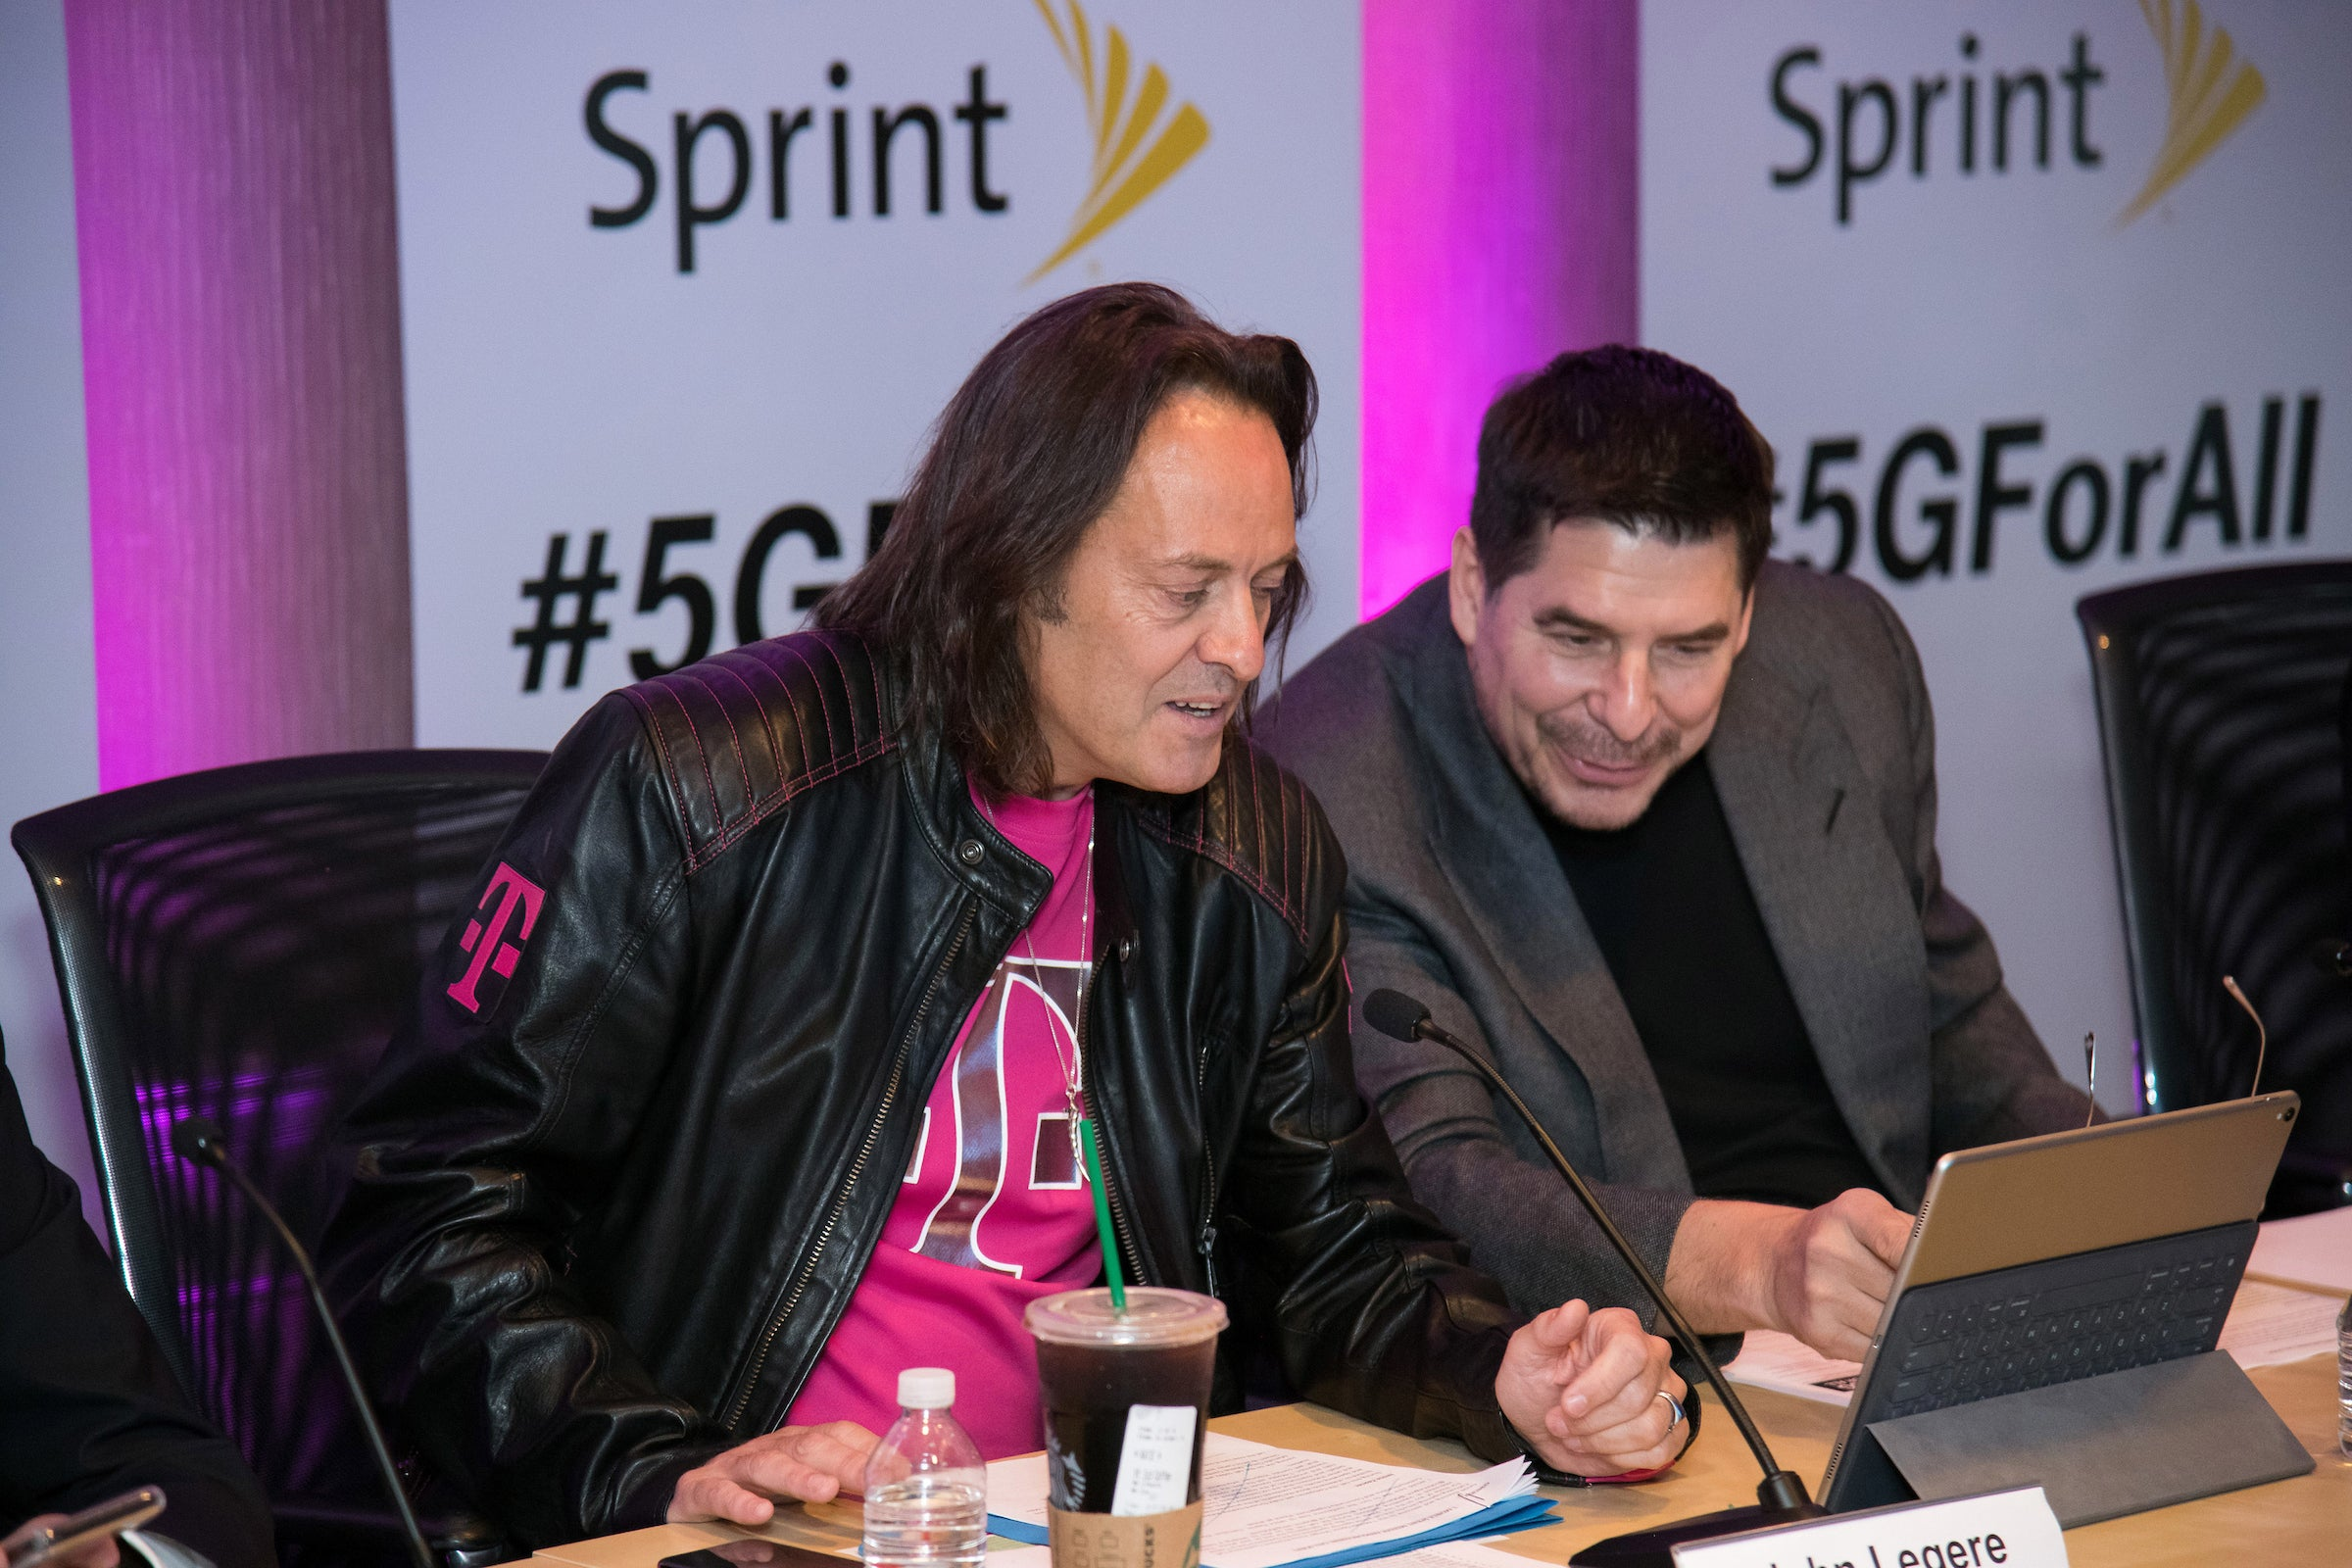 Where Will Sprint Corporation Be in 1 Year? | The Motley Fool